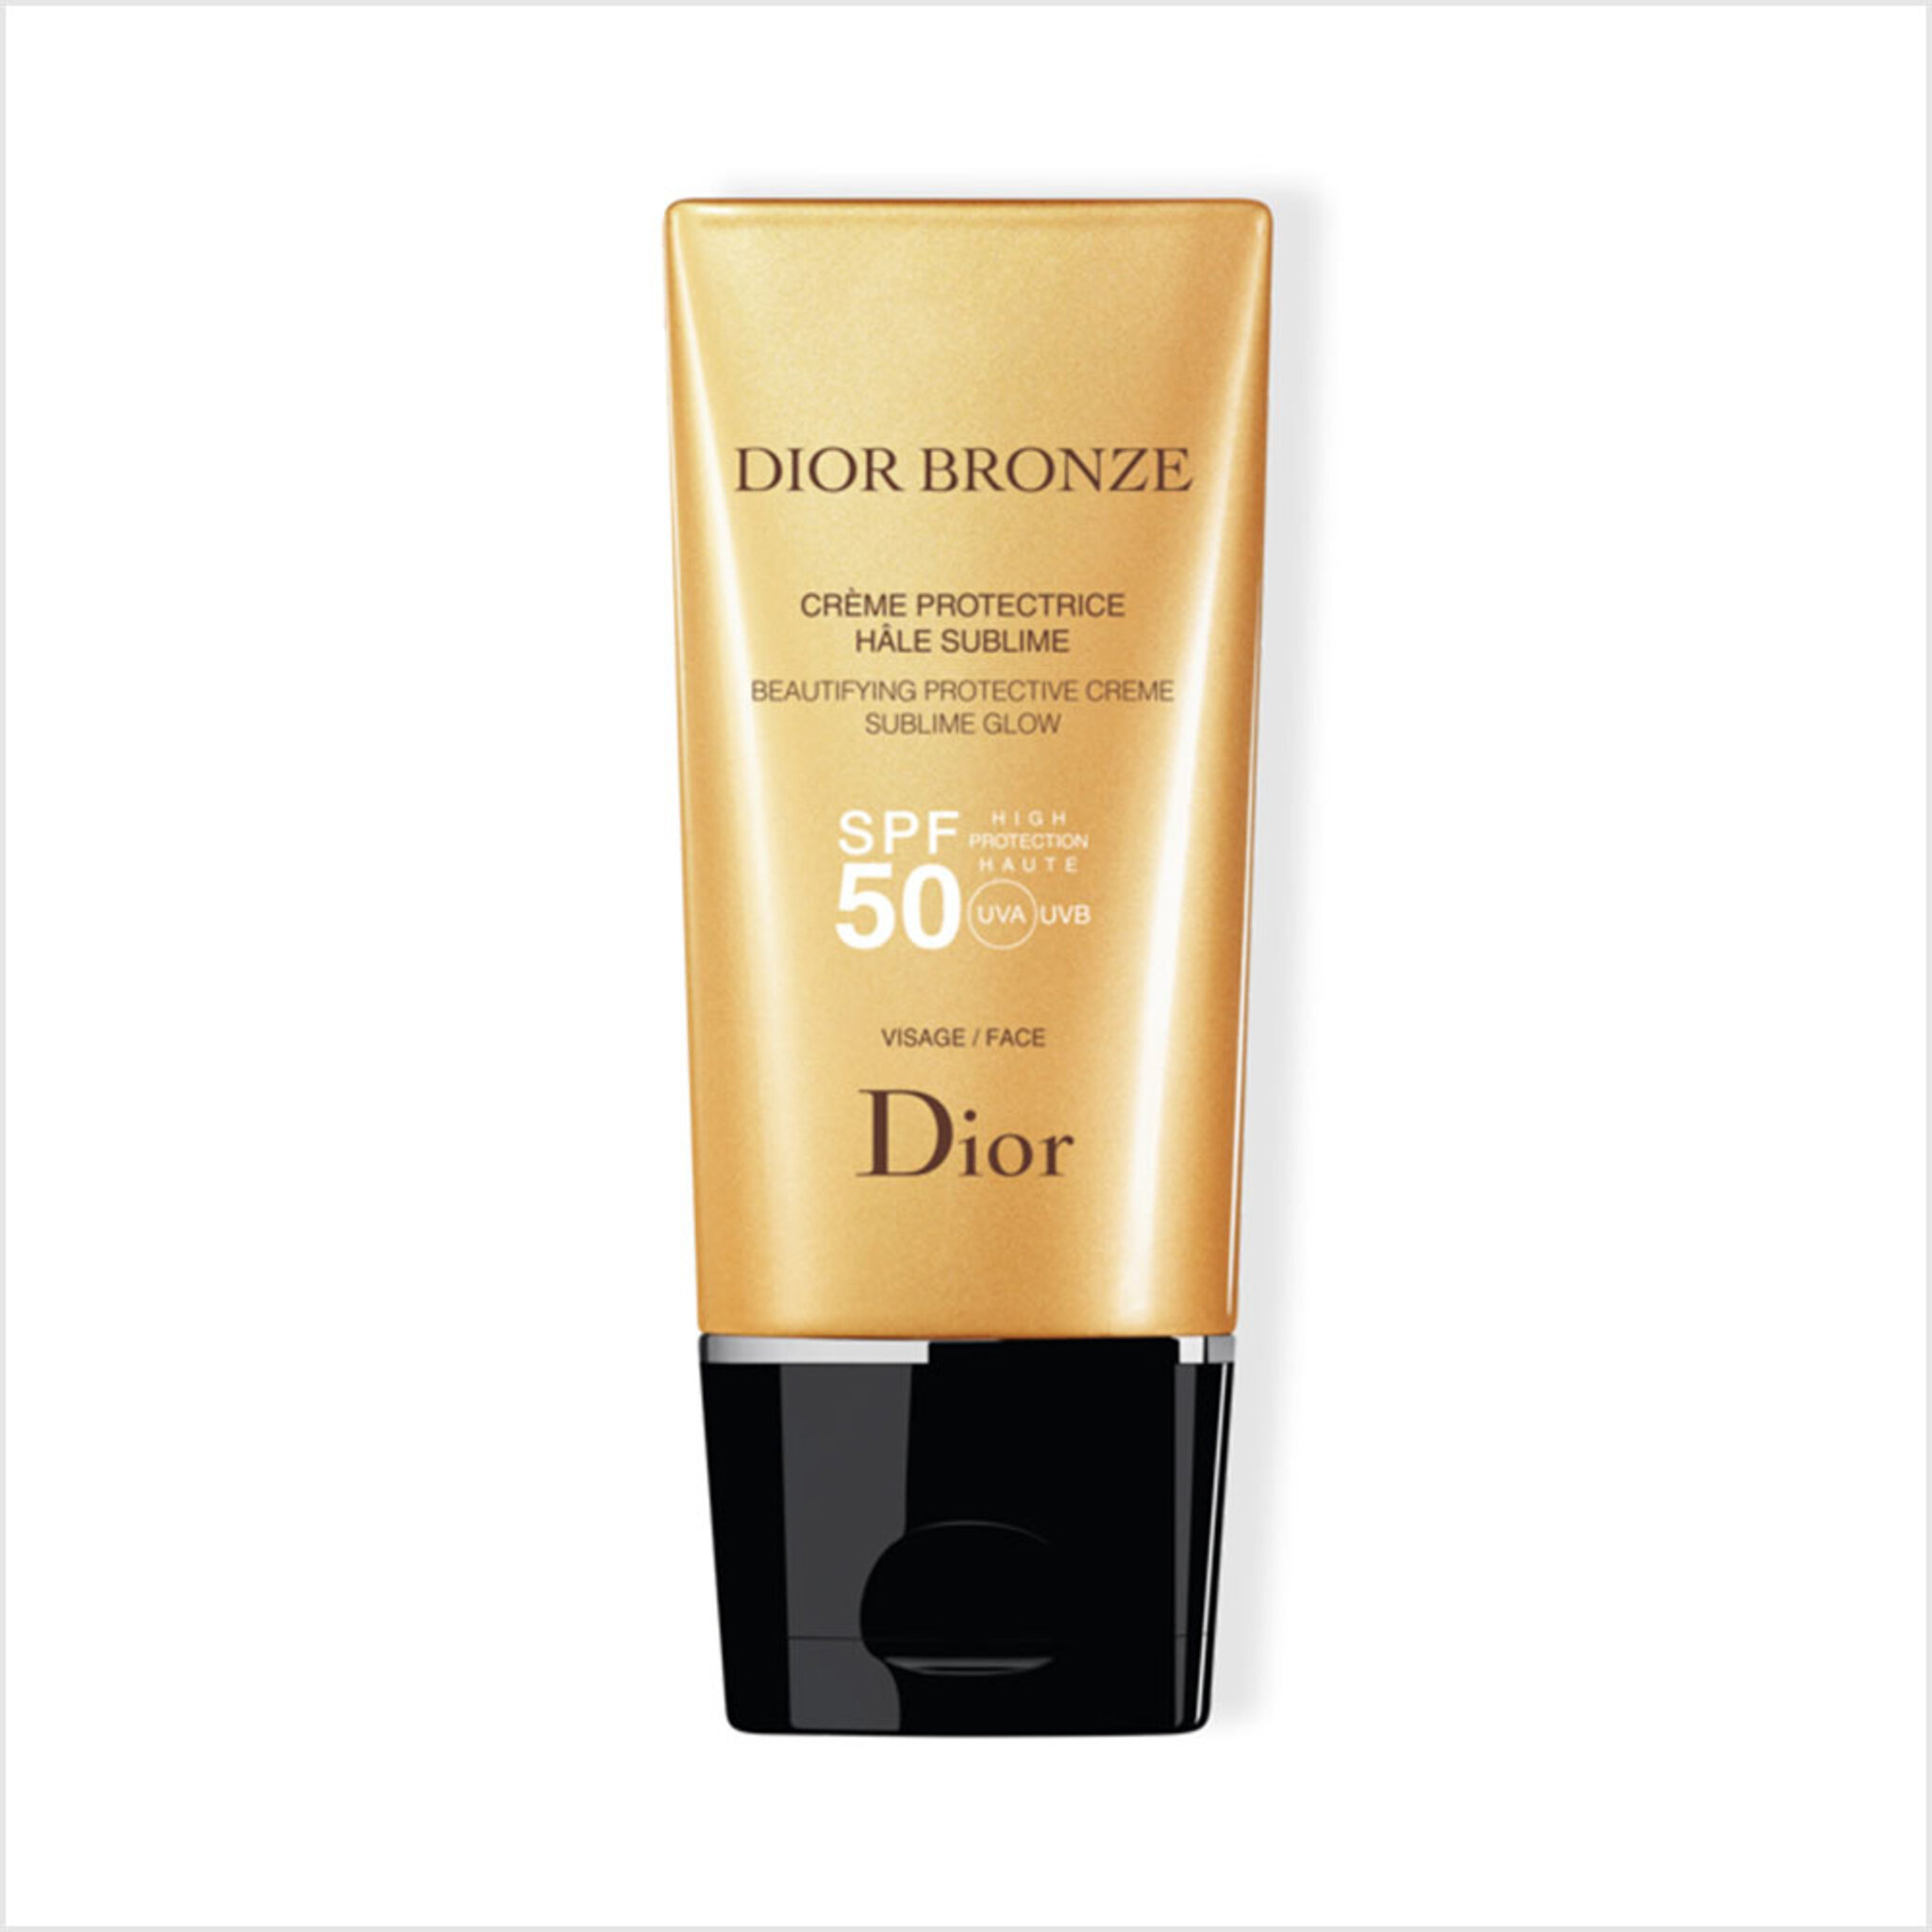 Bronze Beautifying Protective Creme Sublime Glow SPF 50, 50 ML